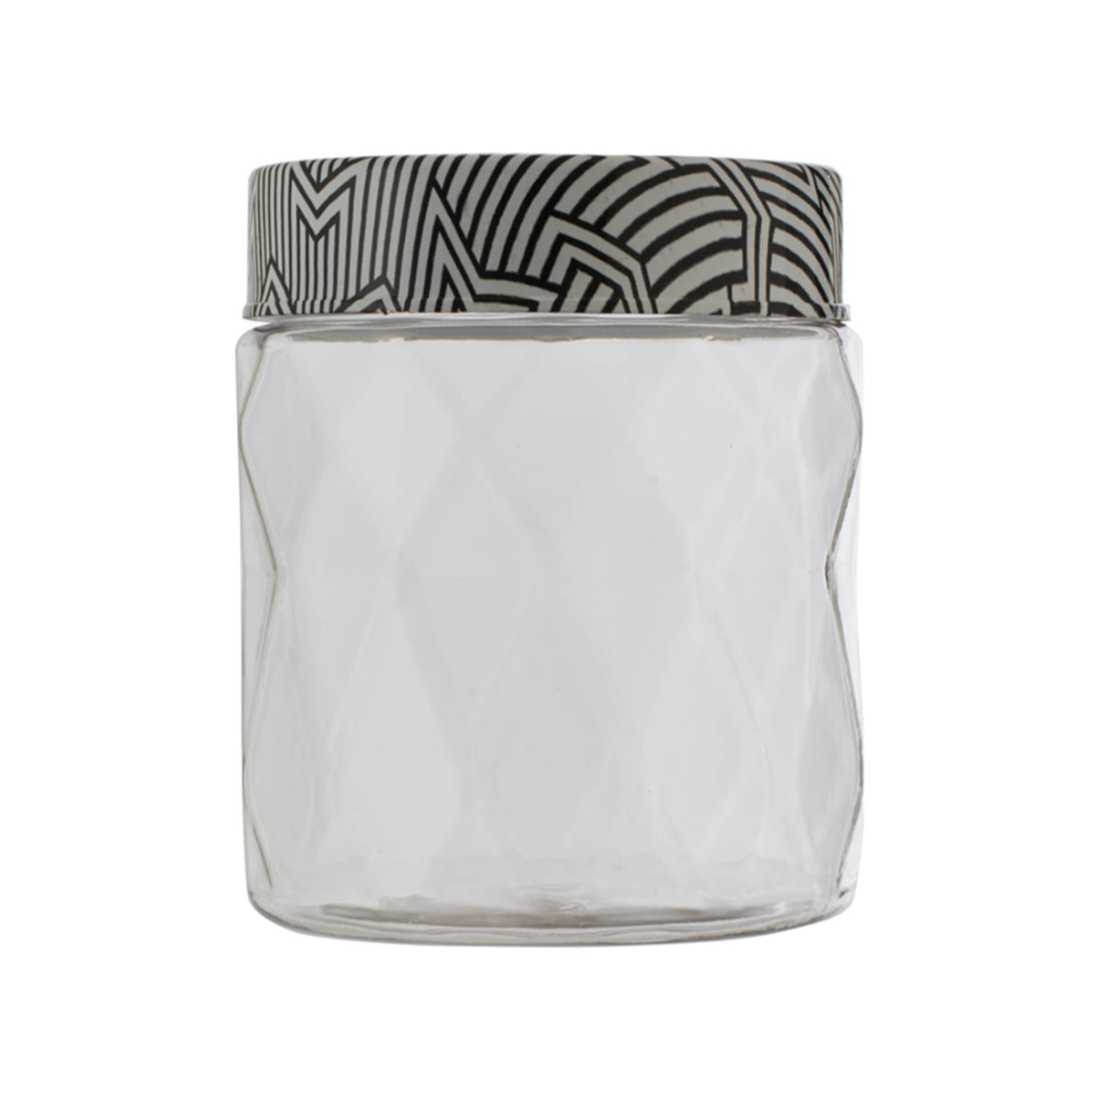 Clark Container 500 ml Glass Containers in Transparent Container & Black Whitelid Colour by Living Essence